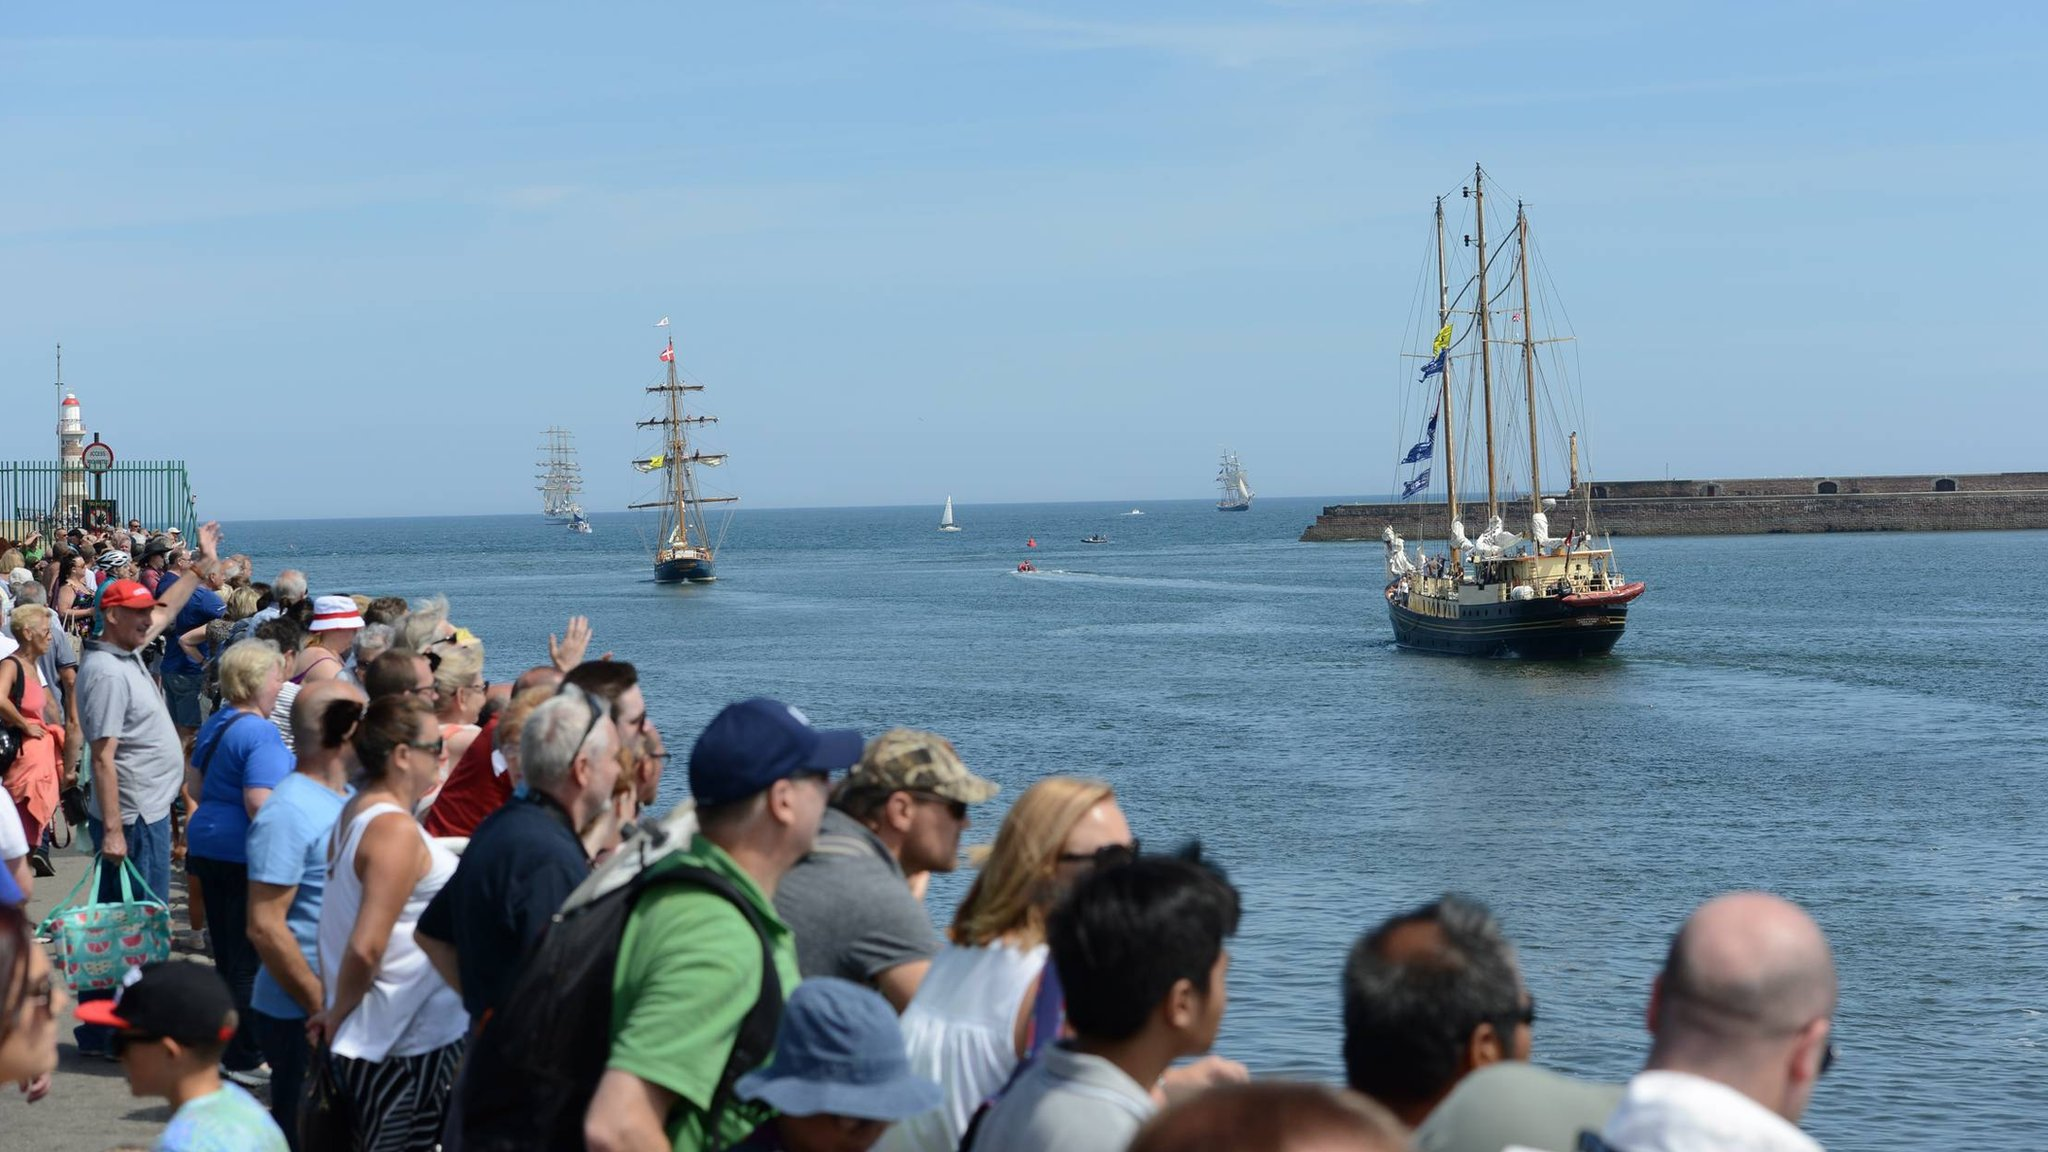 Sunderland Parade of Sail marks Tall Ships festival end